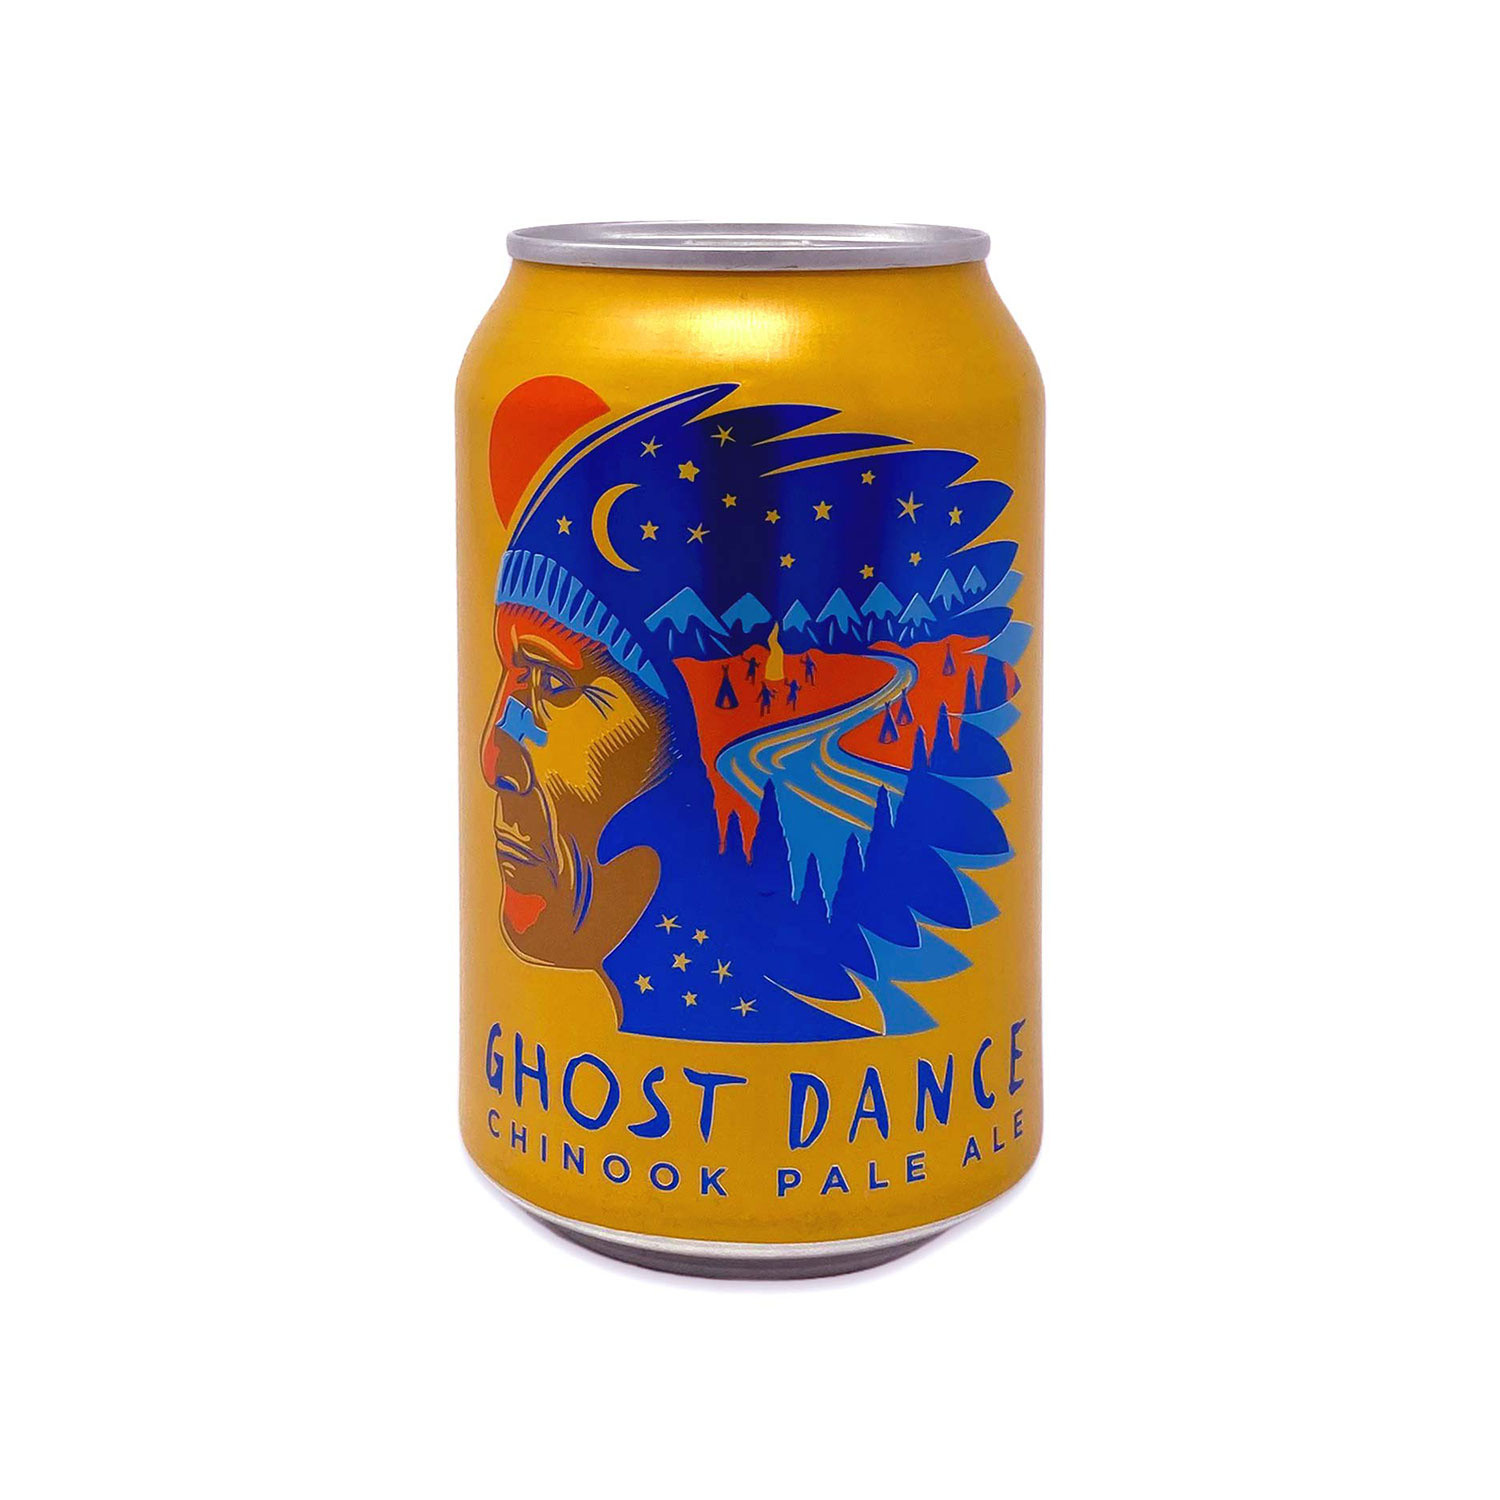 Ghost Dance Chinook Pale Ale